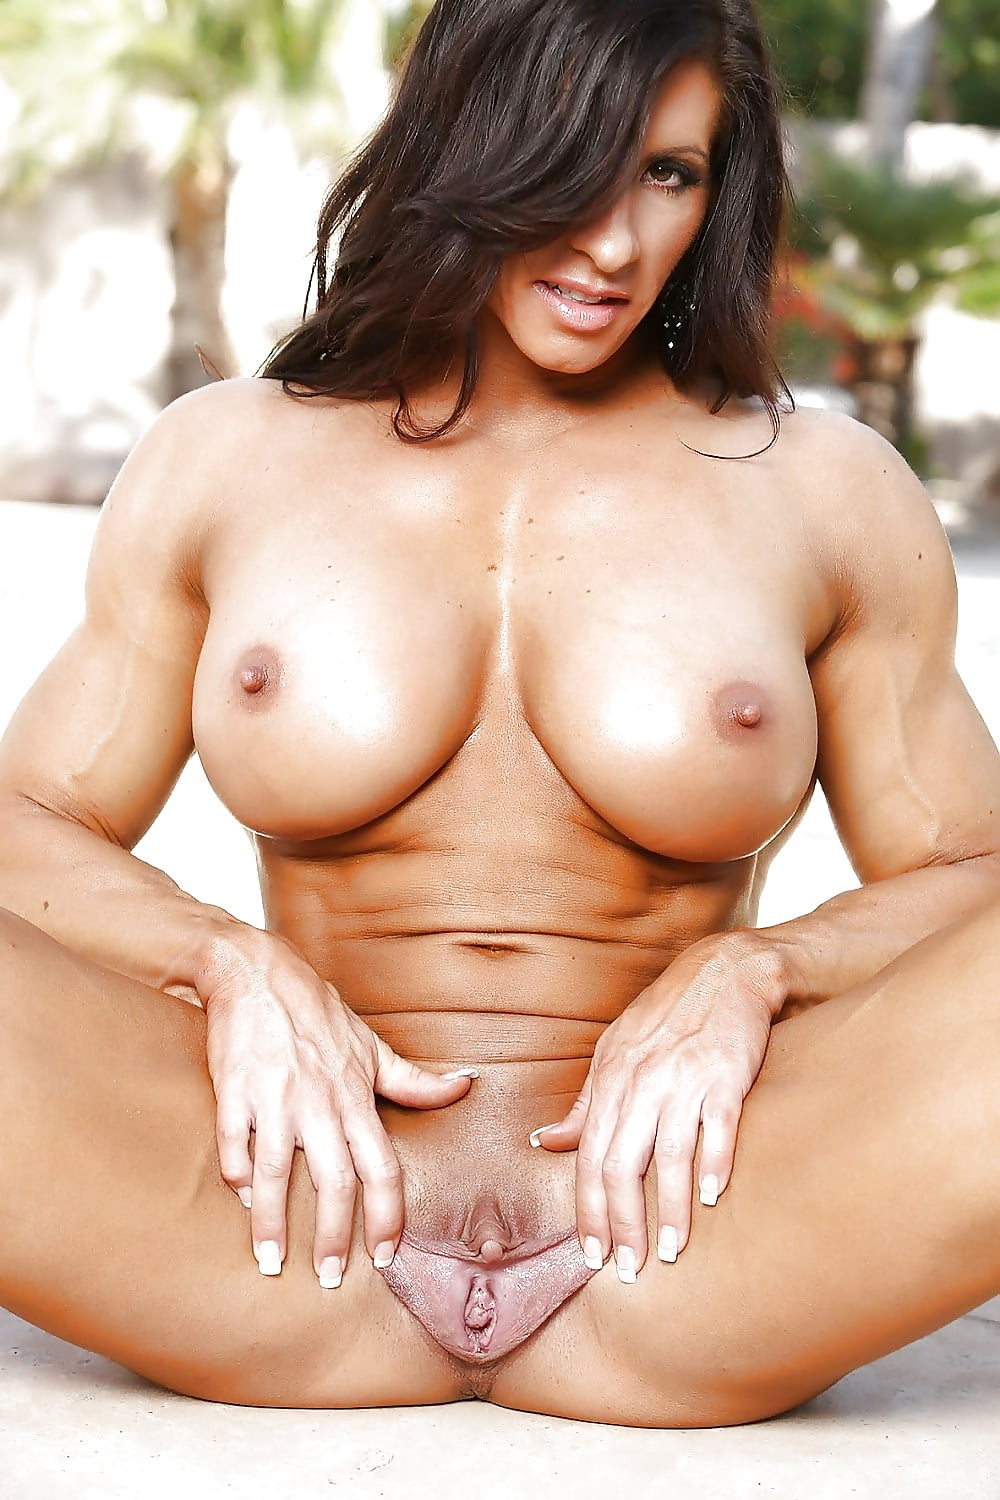 Female muscle cougar nipple and clit clamps, free porn galery